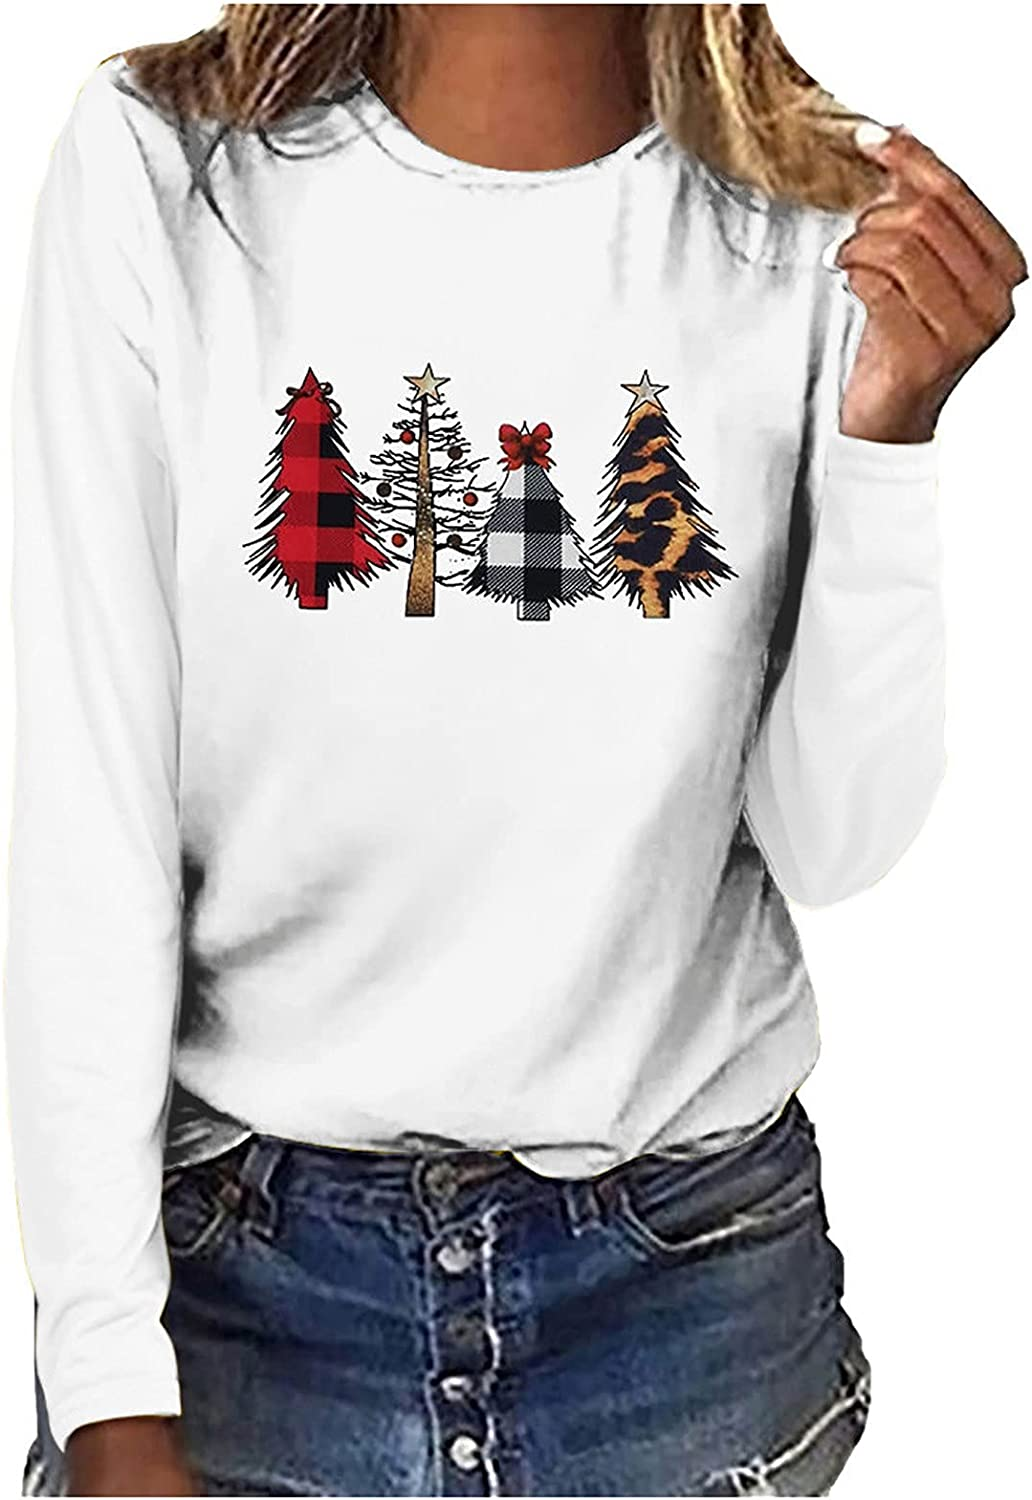 Women's Christmas Trees Printed Shirts Autumn Fashion Casual Long Sleeve Sweatshirt Pullover Tops Loose Blouse